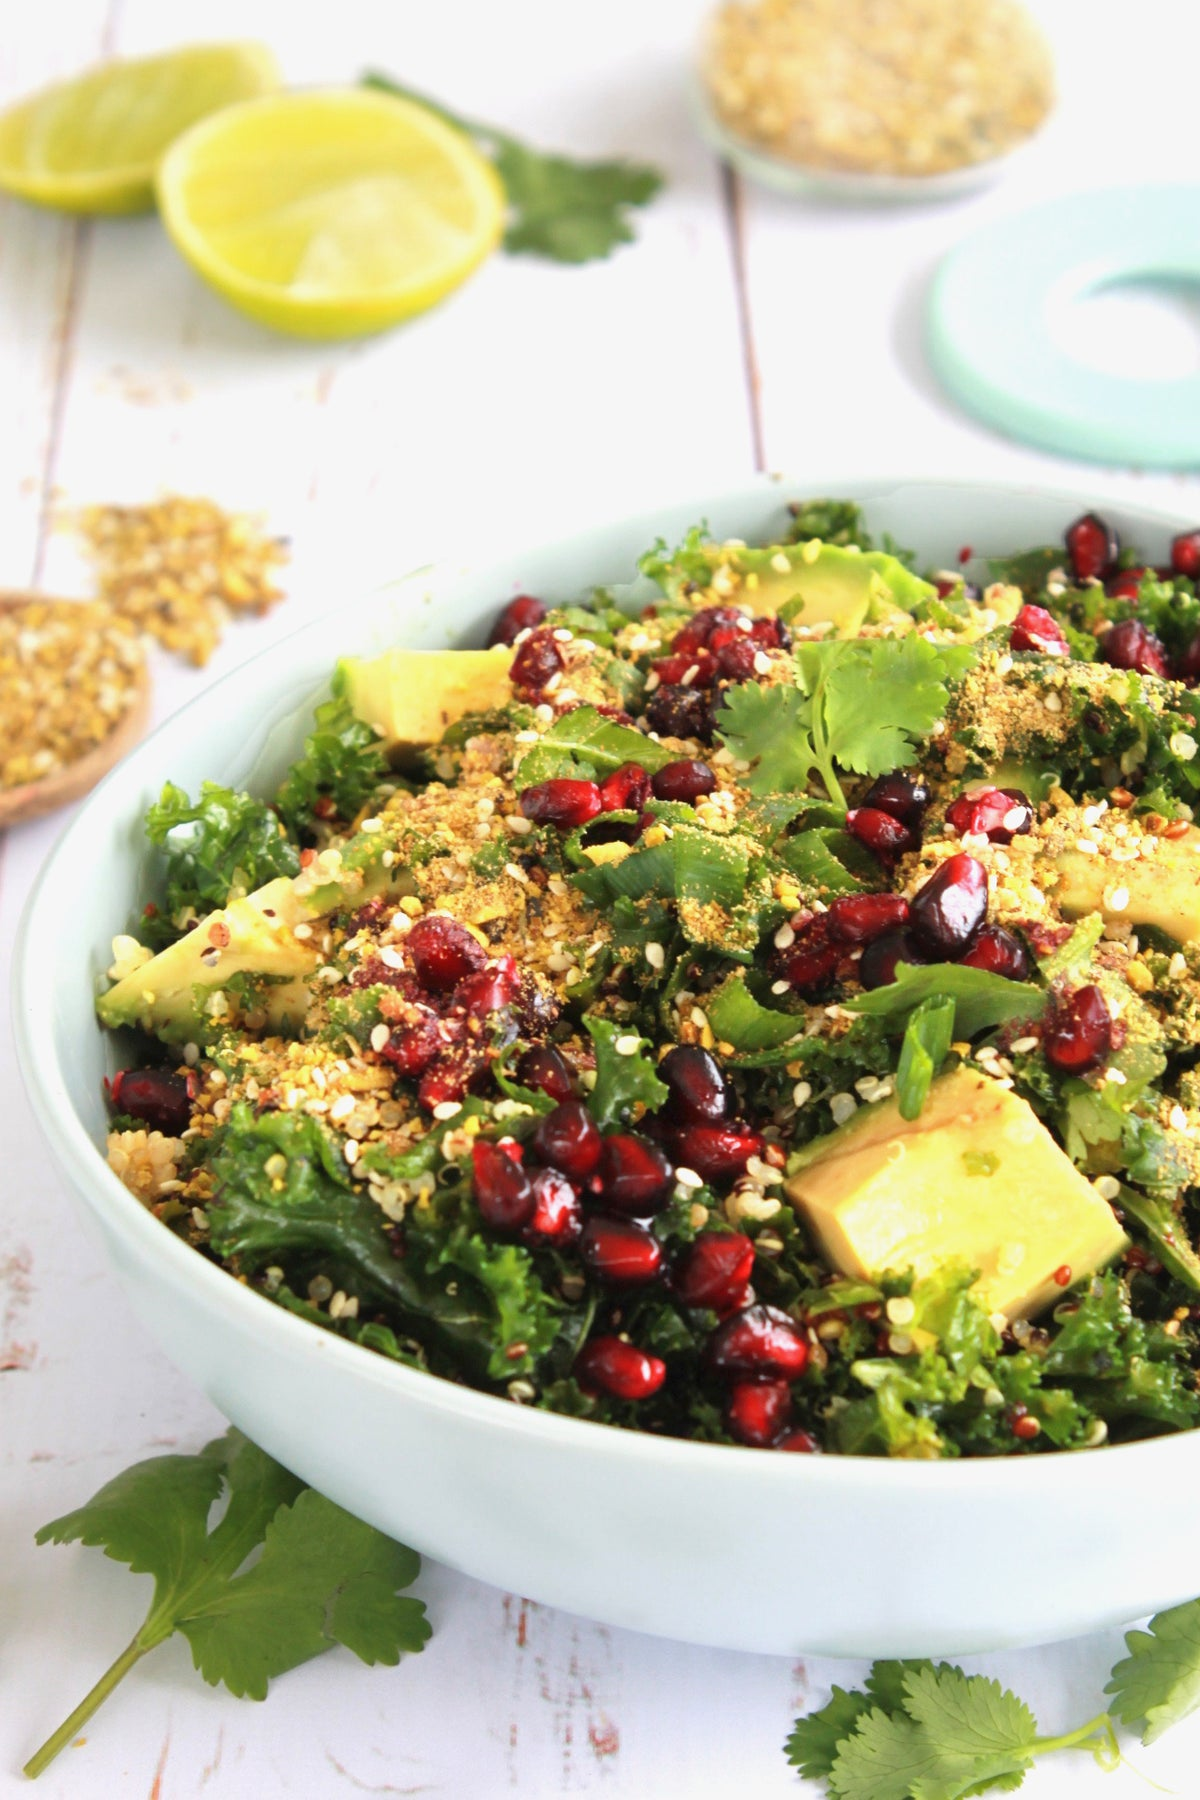 The 'Live Love Nourish' Kale, Quinoa & Pomegranate Salad